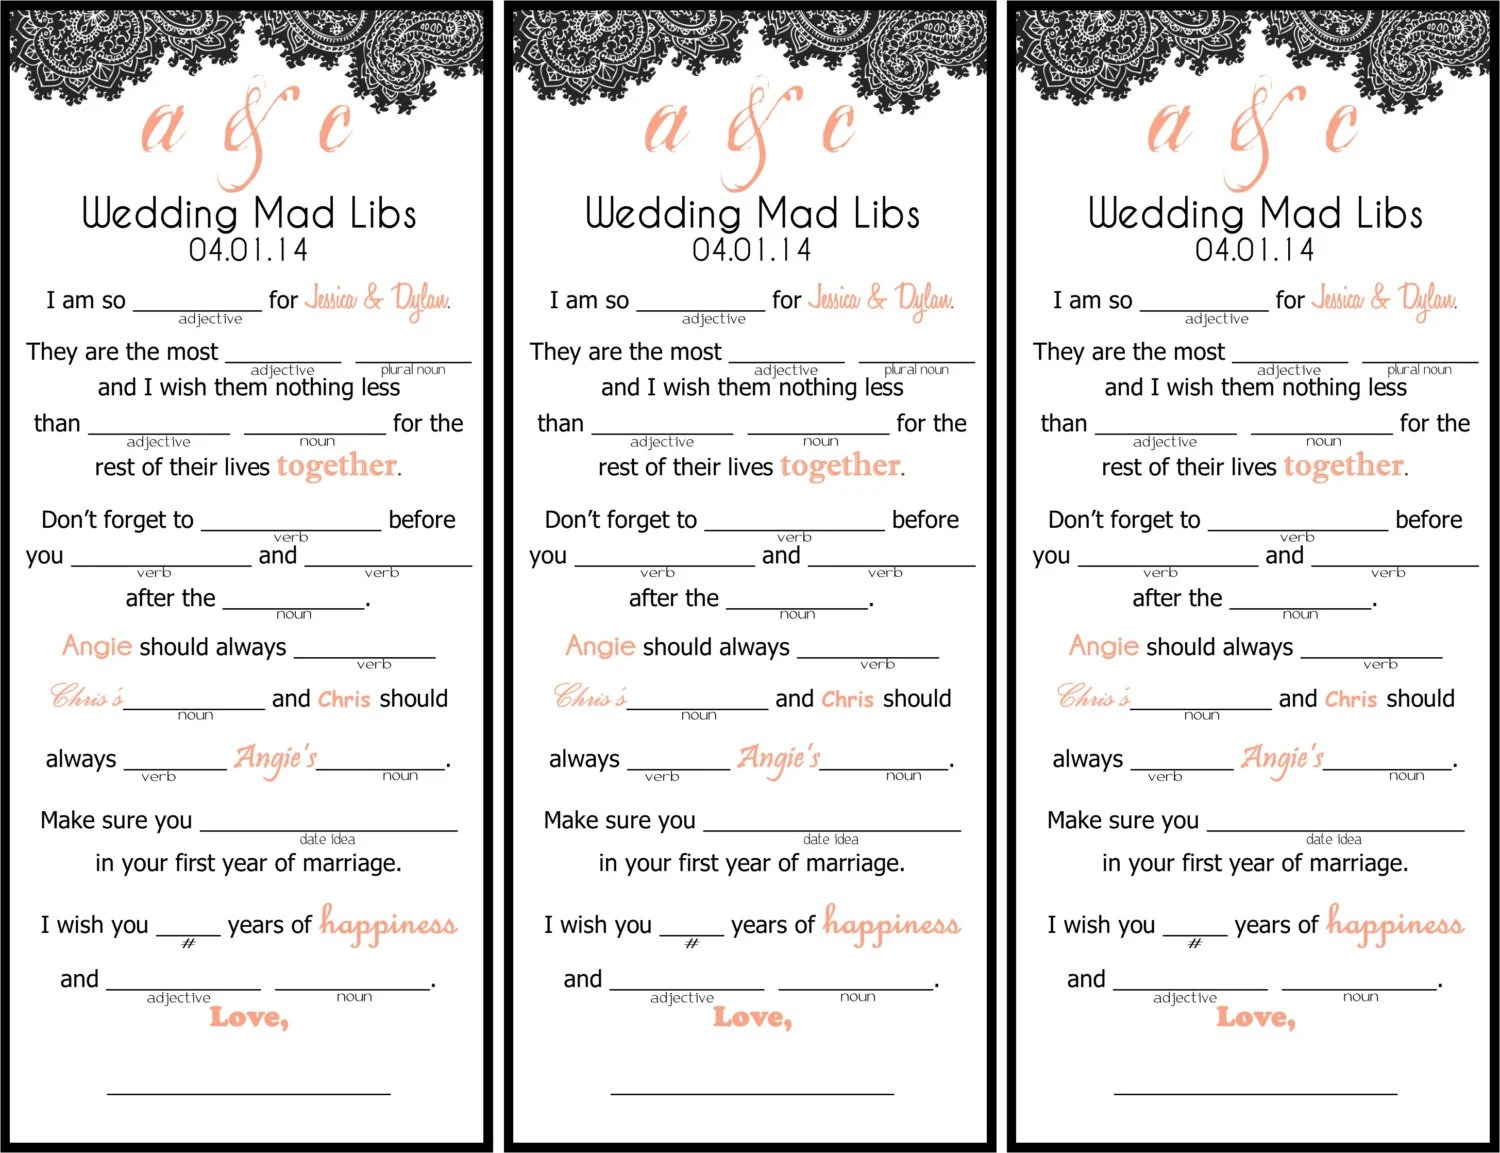 Paisley Wedding Mad Libs Printable By Kjones On Etsy